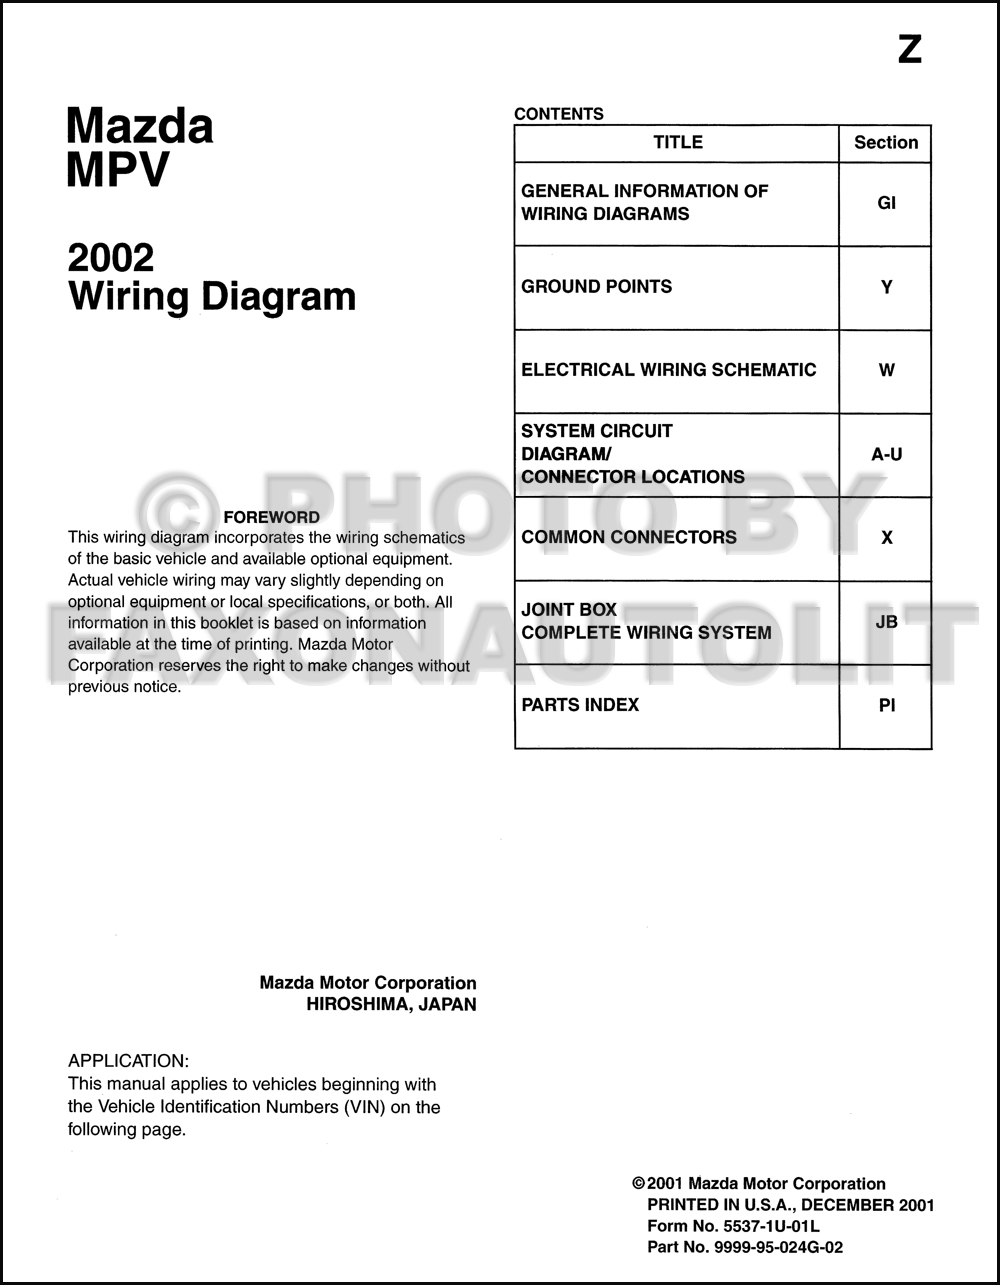 2002 Mazda MPV Wiring Diagram Manual Original. click on thumbnail to zoom